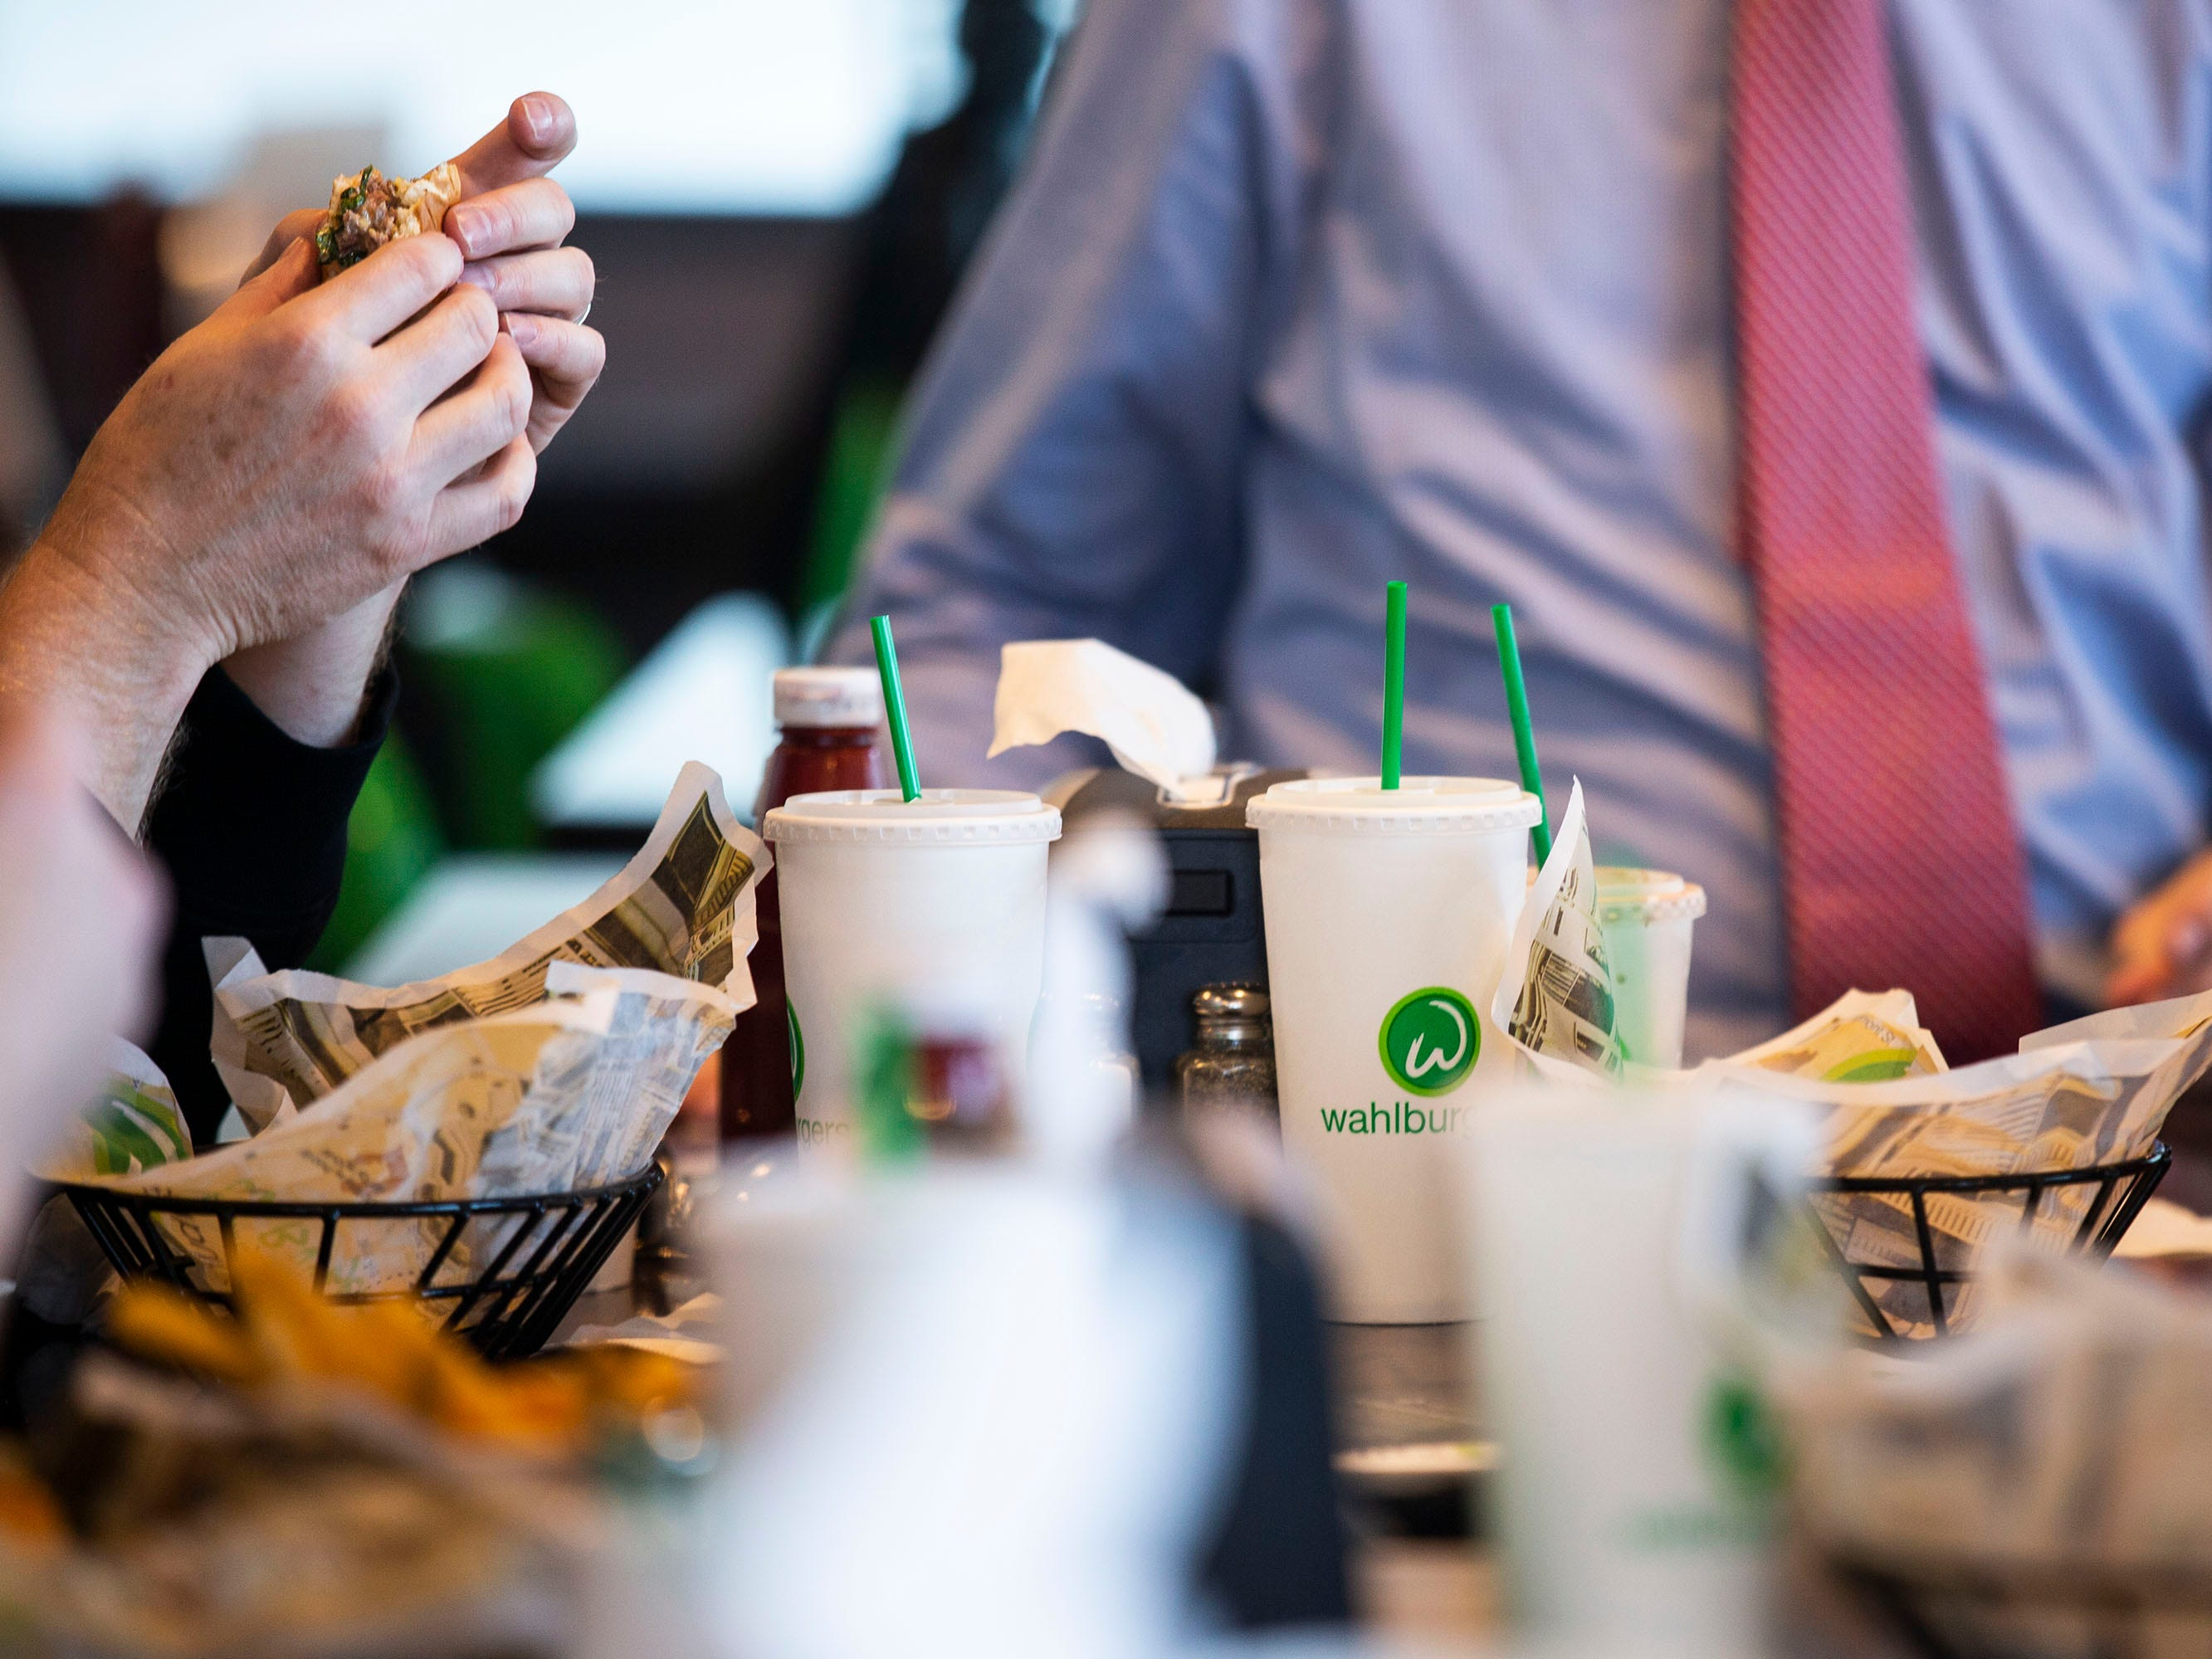 Customers munch on food from Wahlburgers during a preview event for the restaurants opening on Monday, Sept. 10, 2018, in the Jordan Creek Town Center in West Des Moines.